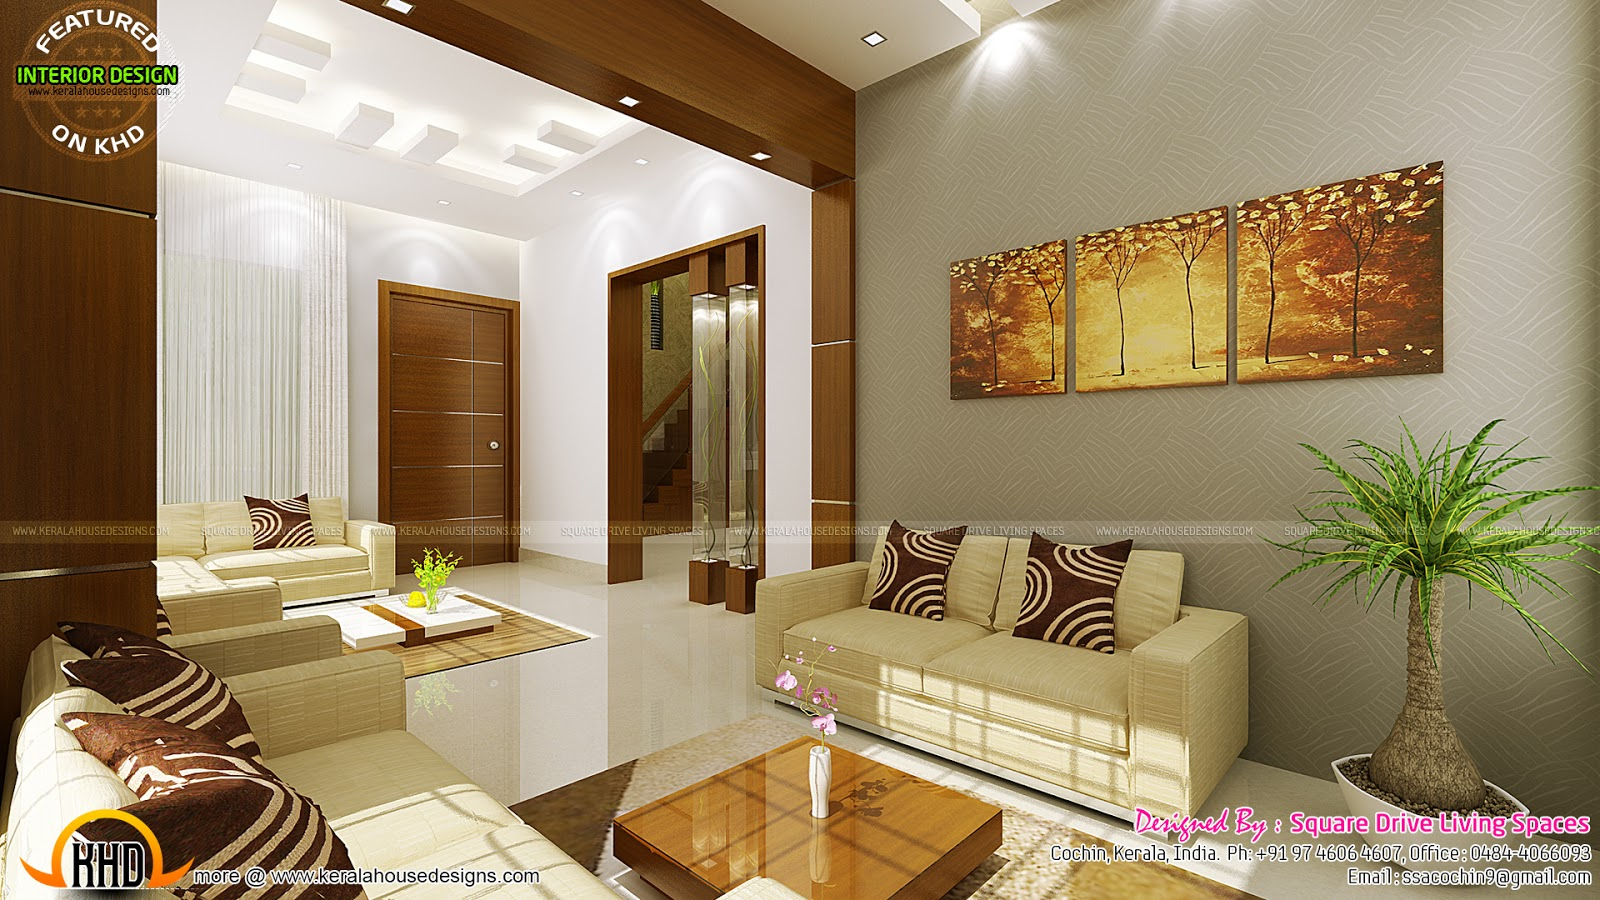 Contemporary kitchen dining and living room kerala home for Room design photos